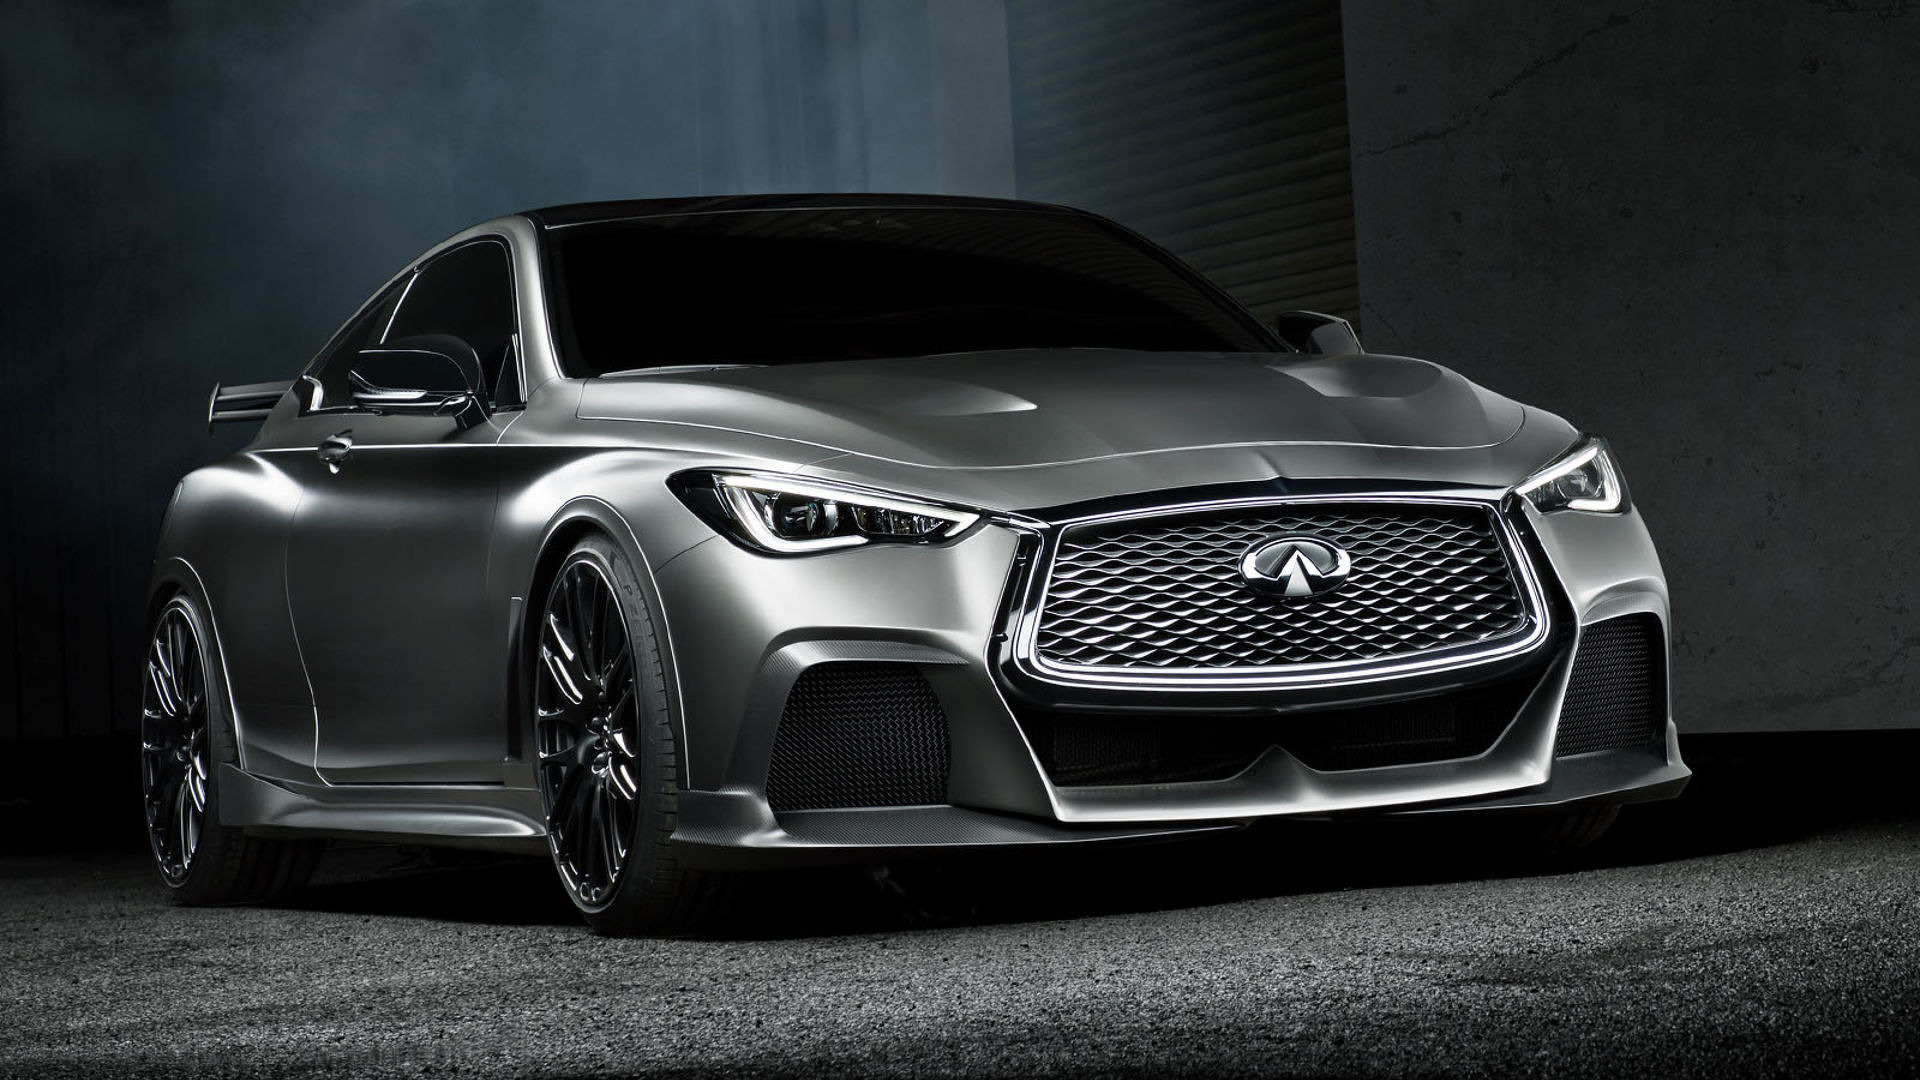 35 New 2020 Infiniti Q60 Coupe Ipl First Drive